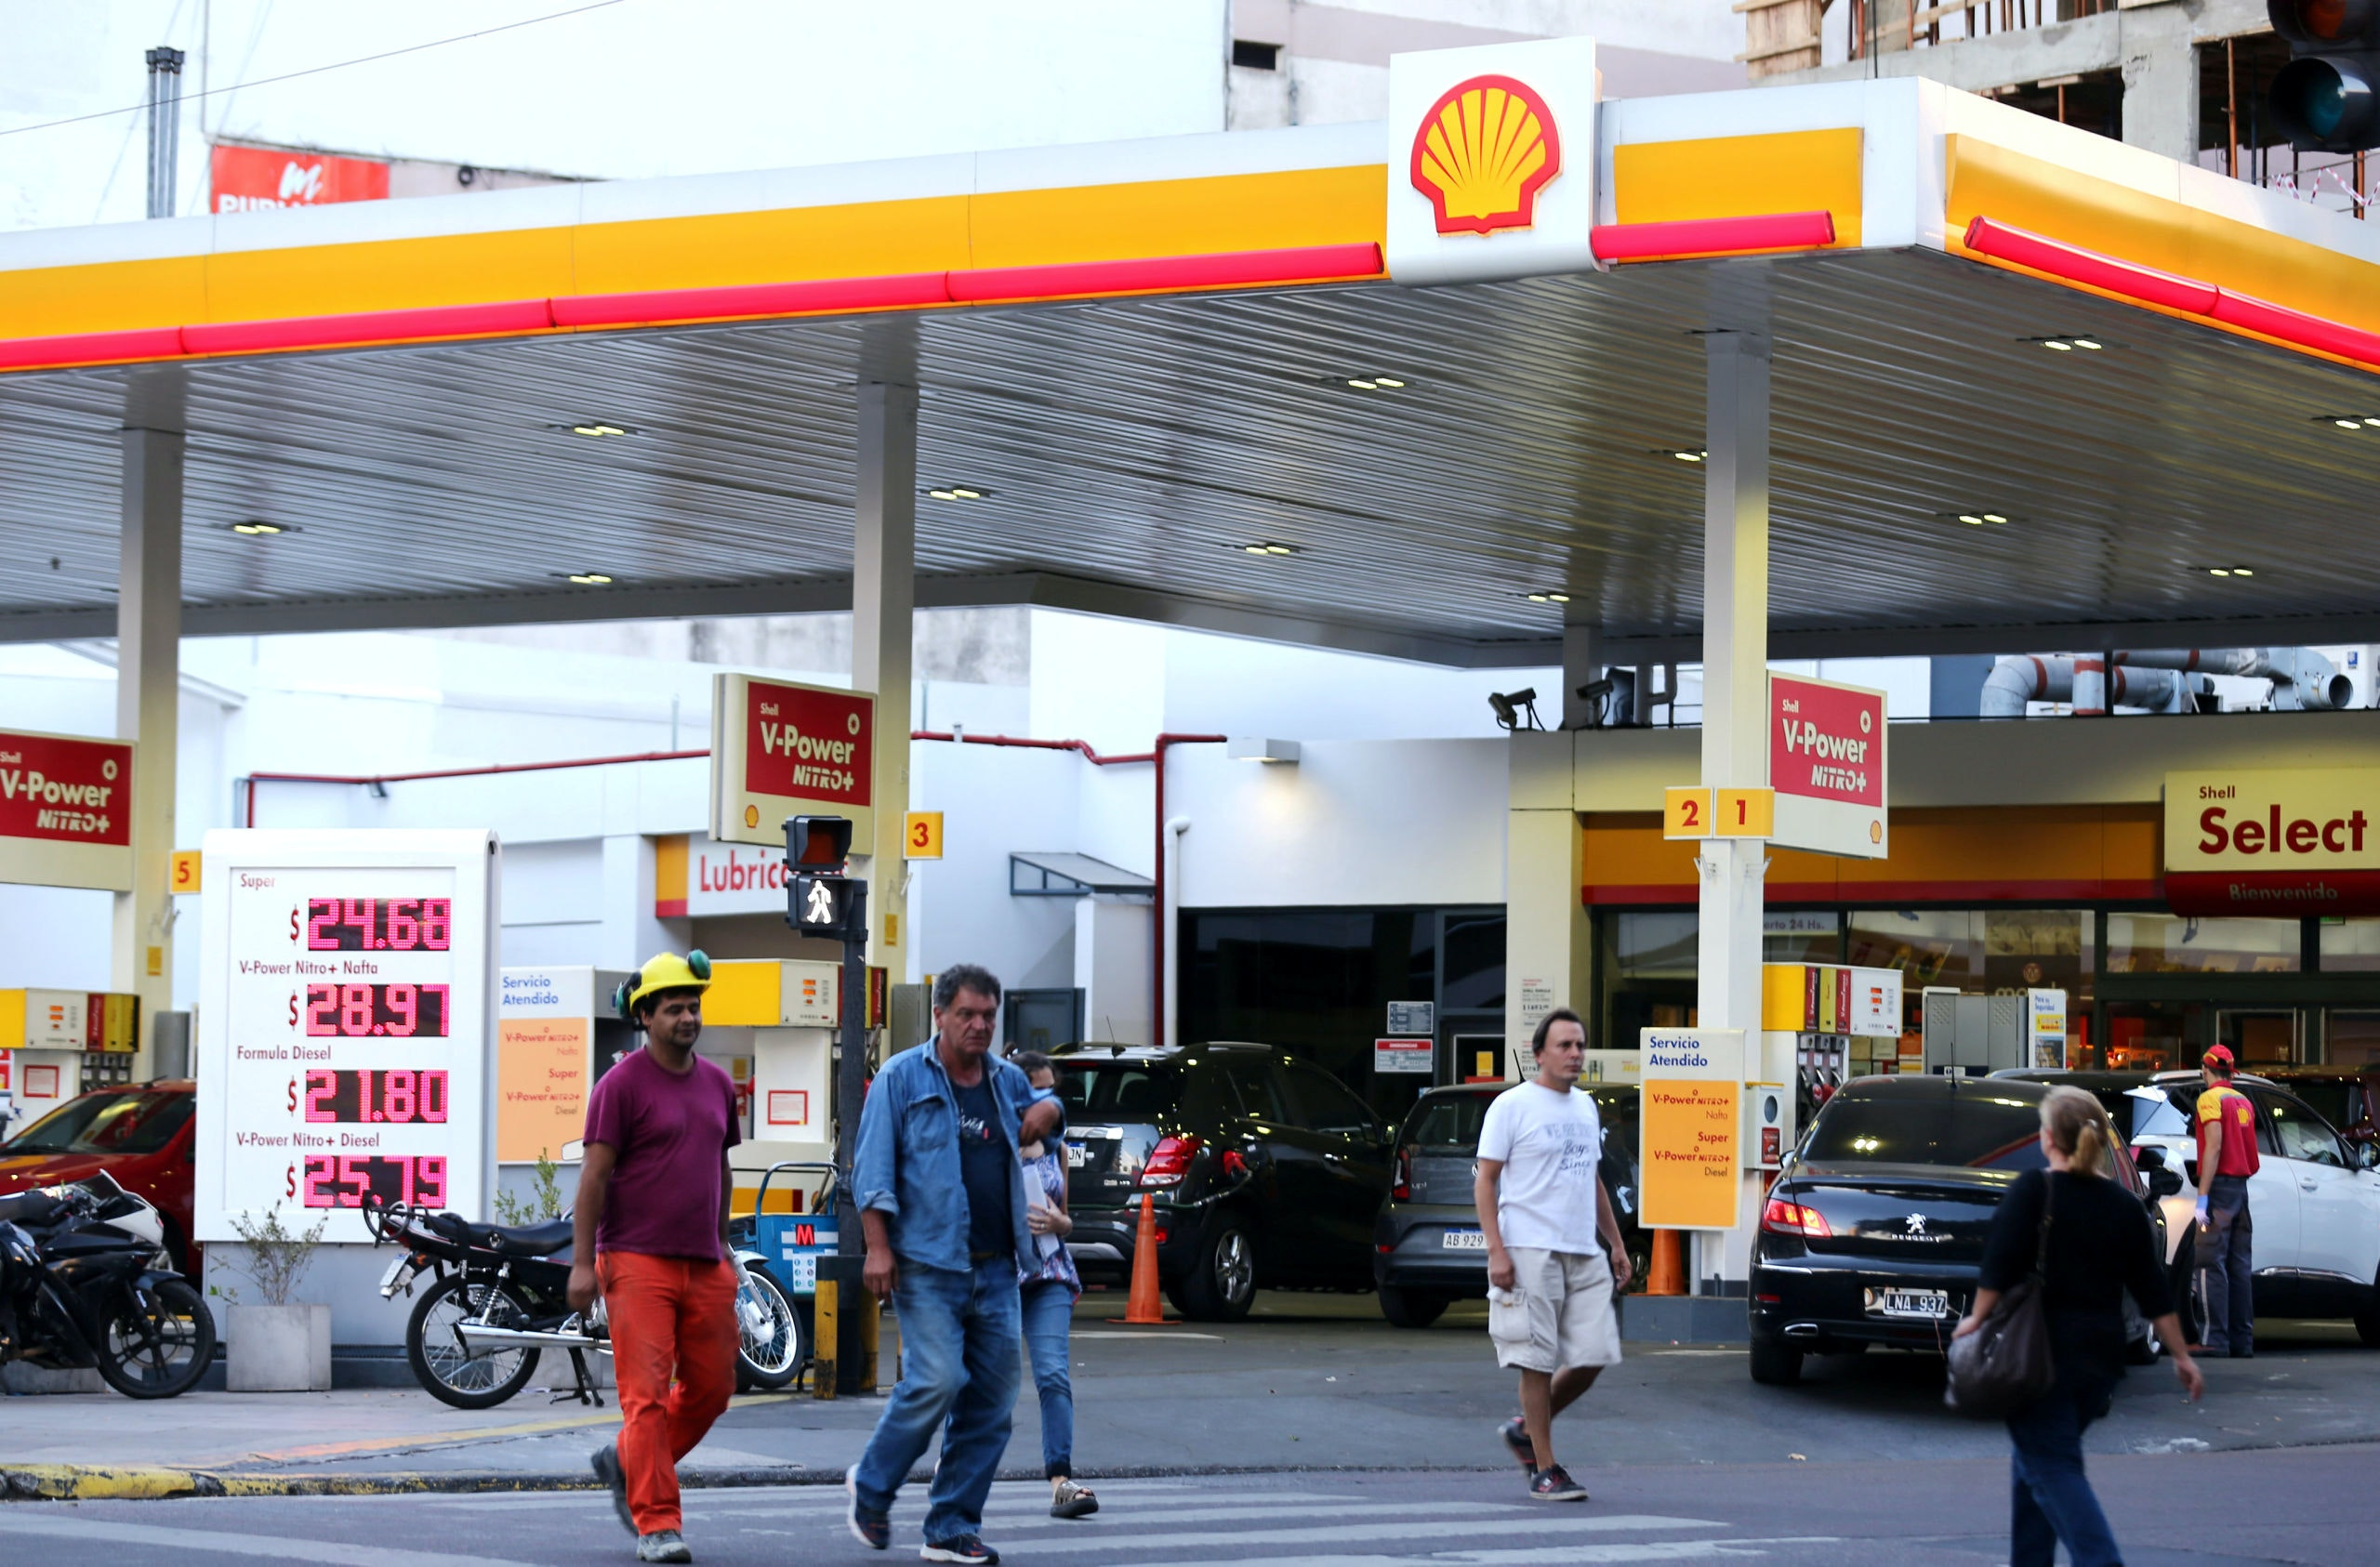 People walk in front of a Shell gas station in Buenos Aires, Argentina, March 12, 2018. REUTERS/Marcos Brindicci